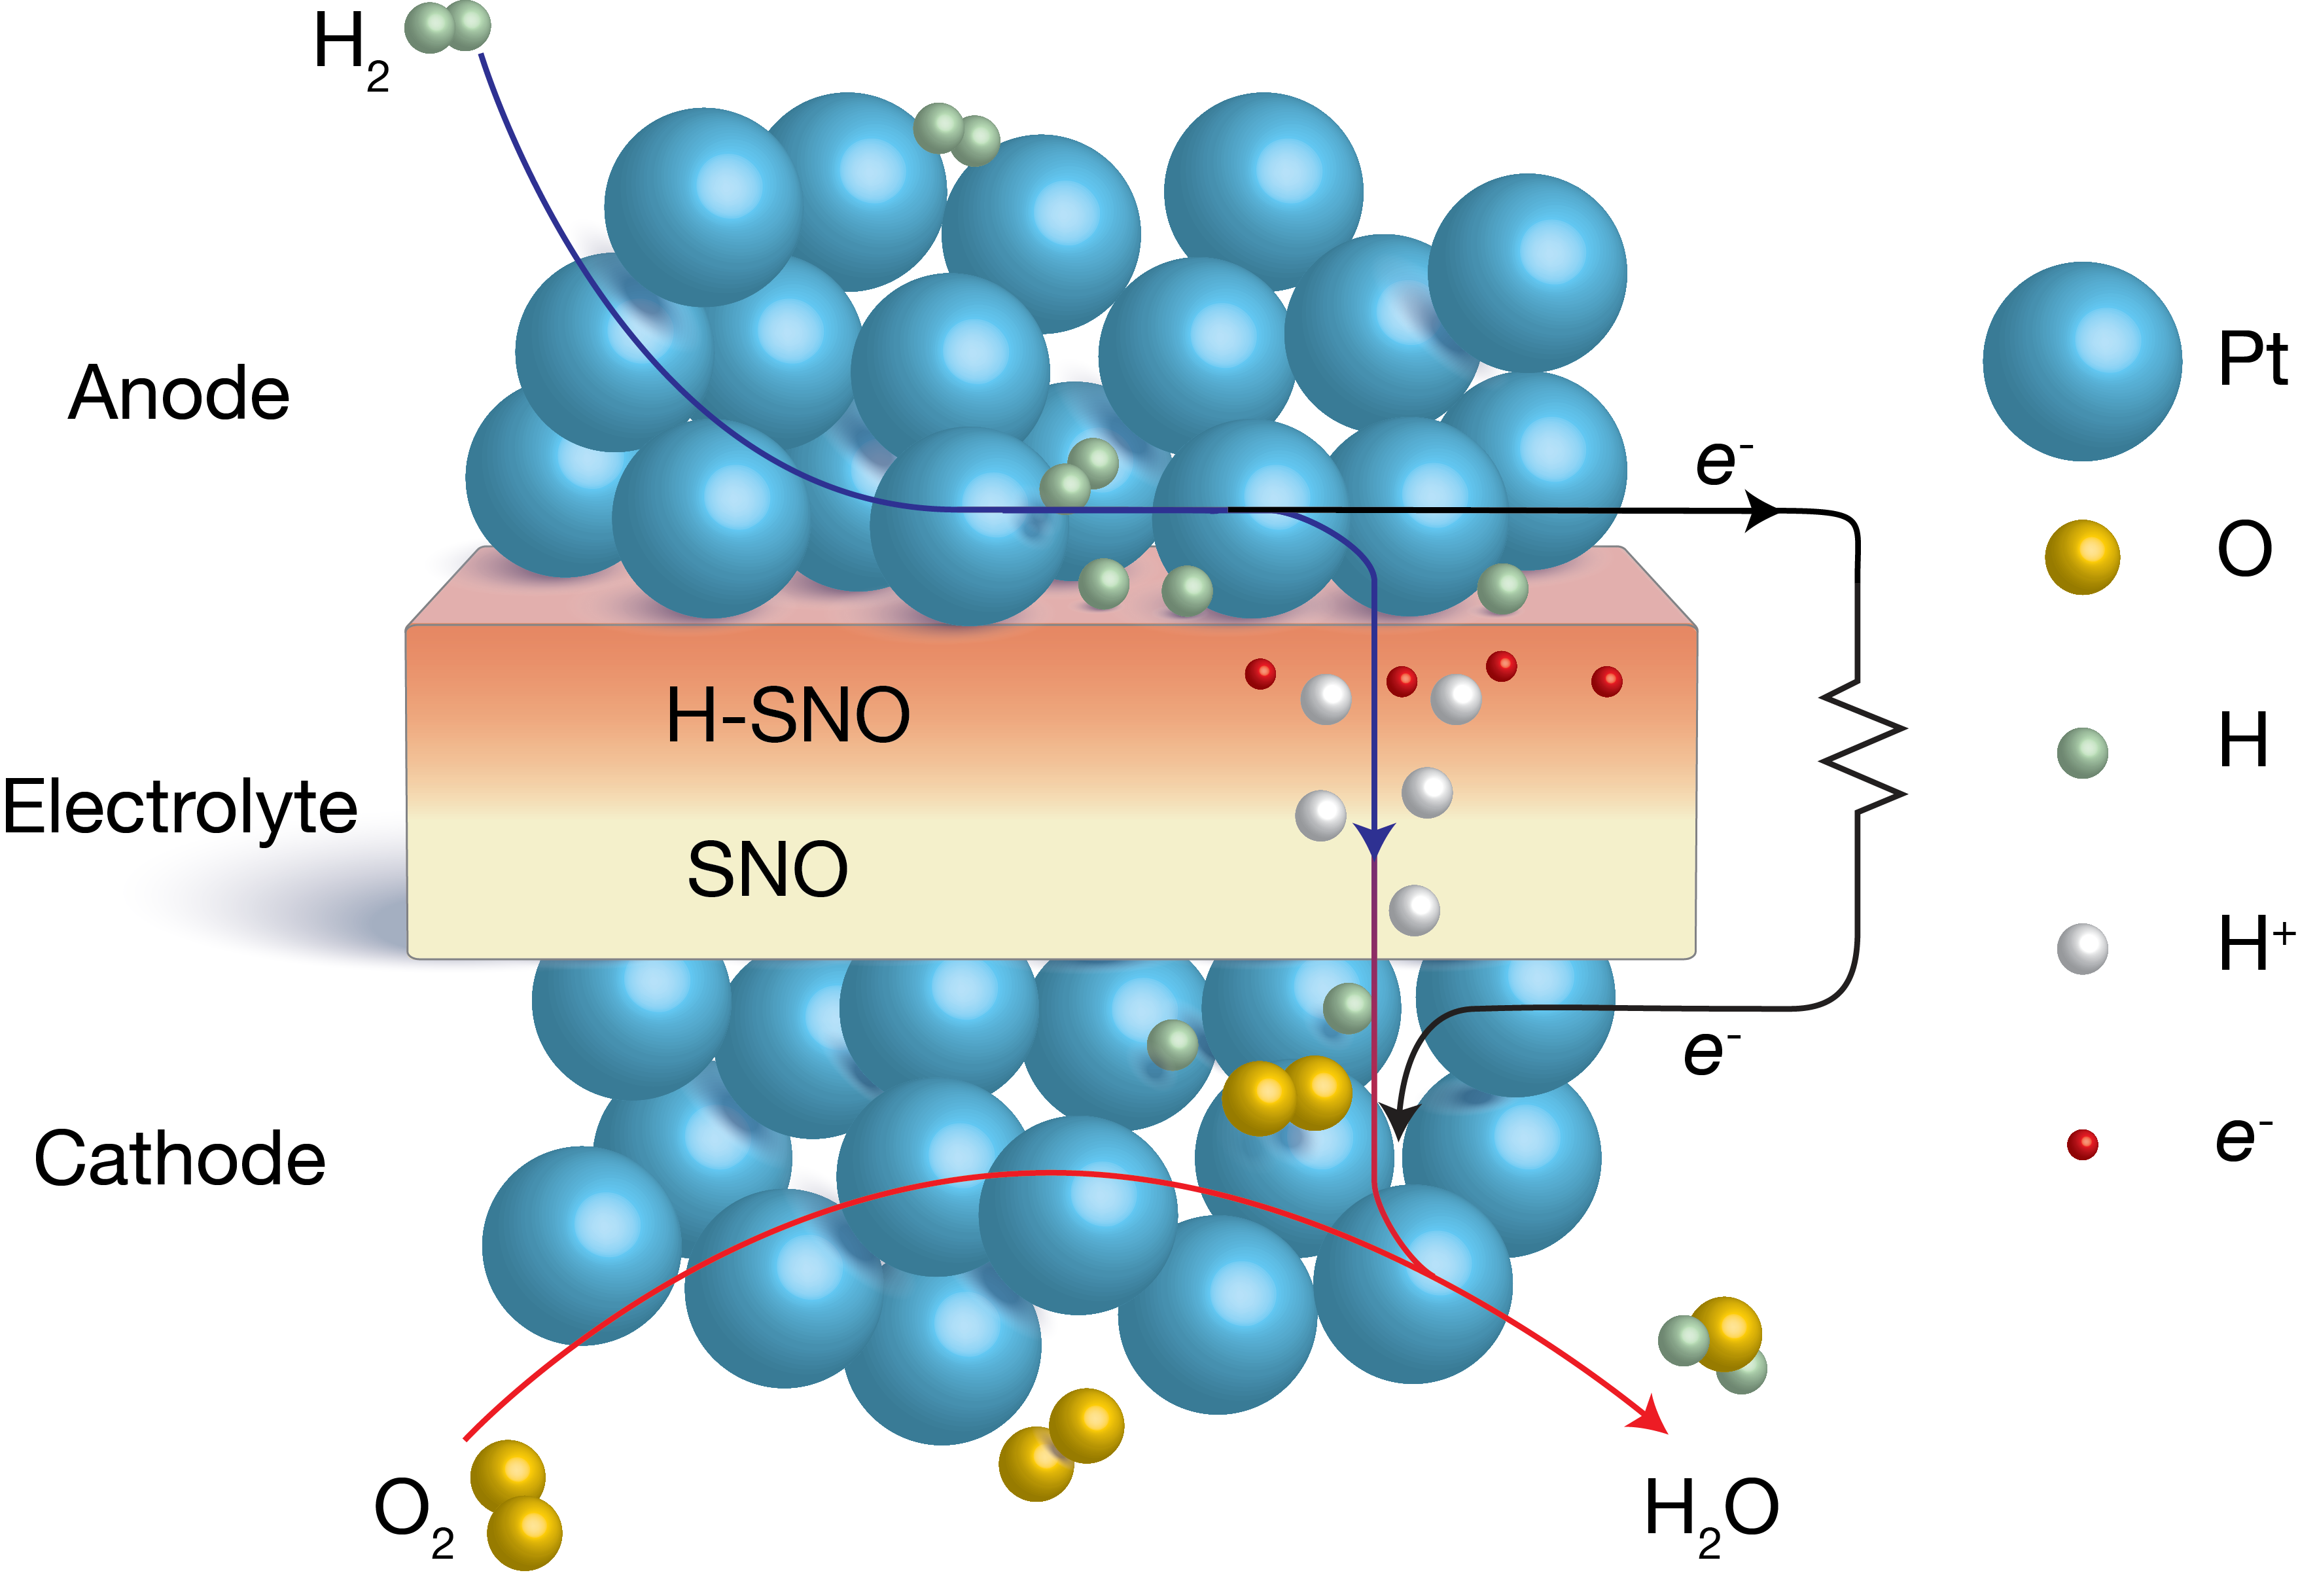 A High-Performance, Low-Temperature Solid Oxide Fuel Cell